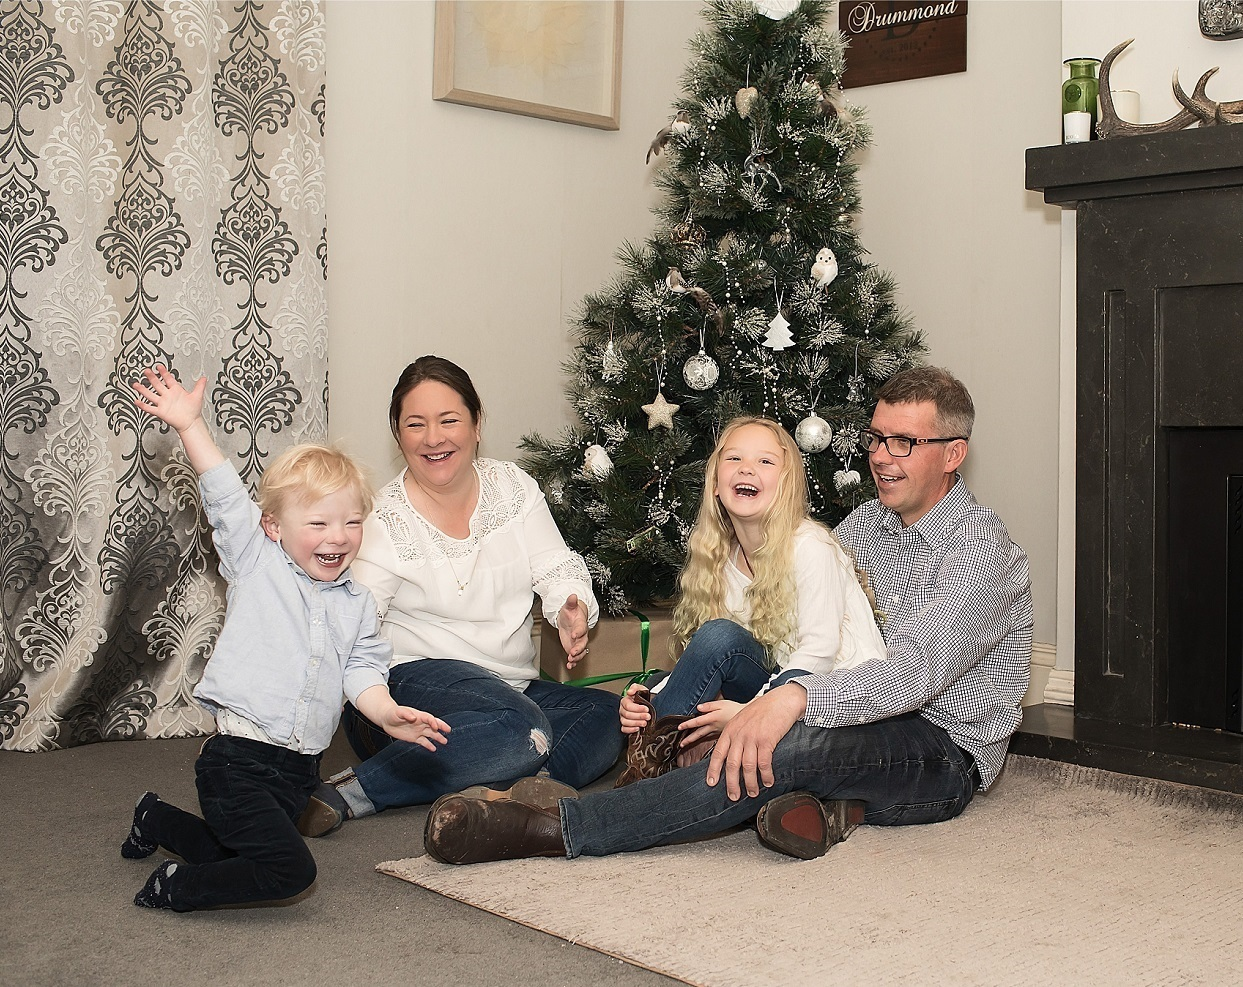 Heart boy's special Christmas: 'Nothing else mattered if we were together'